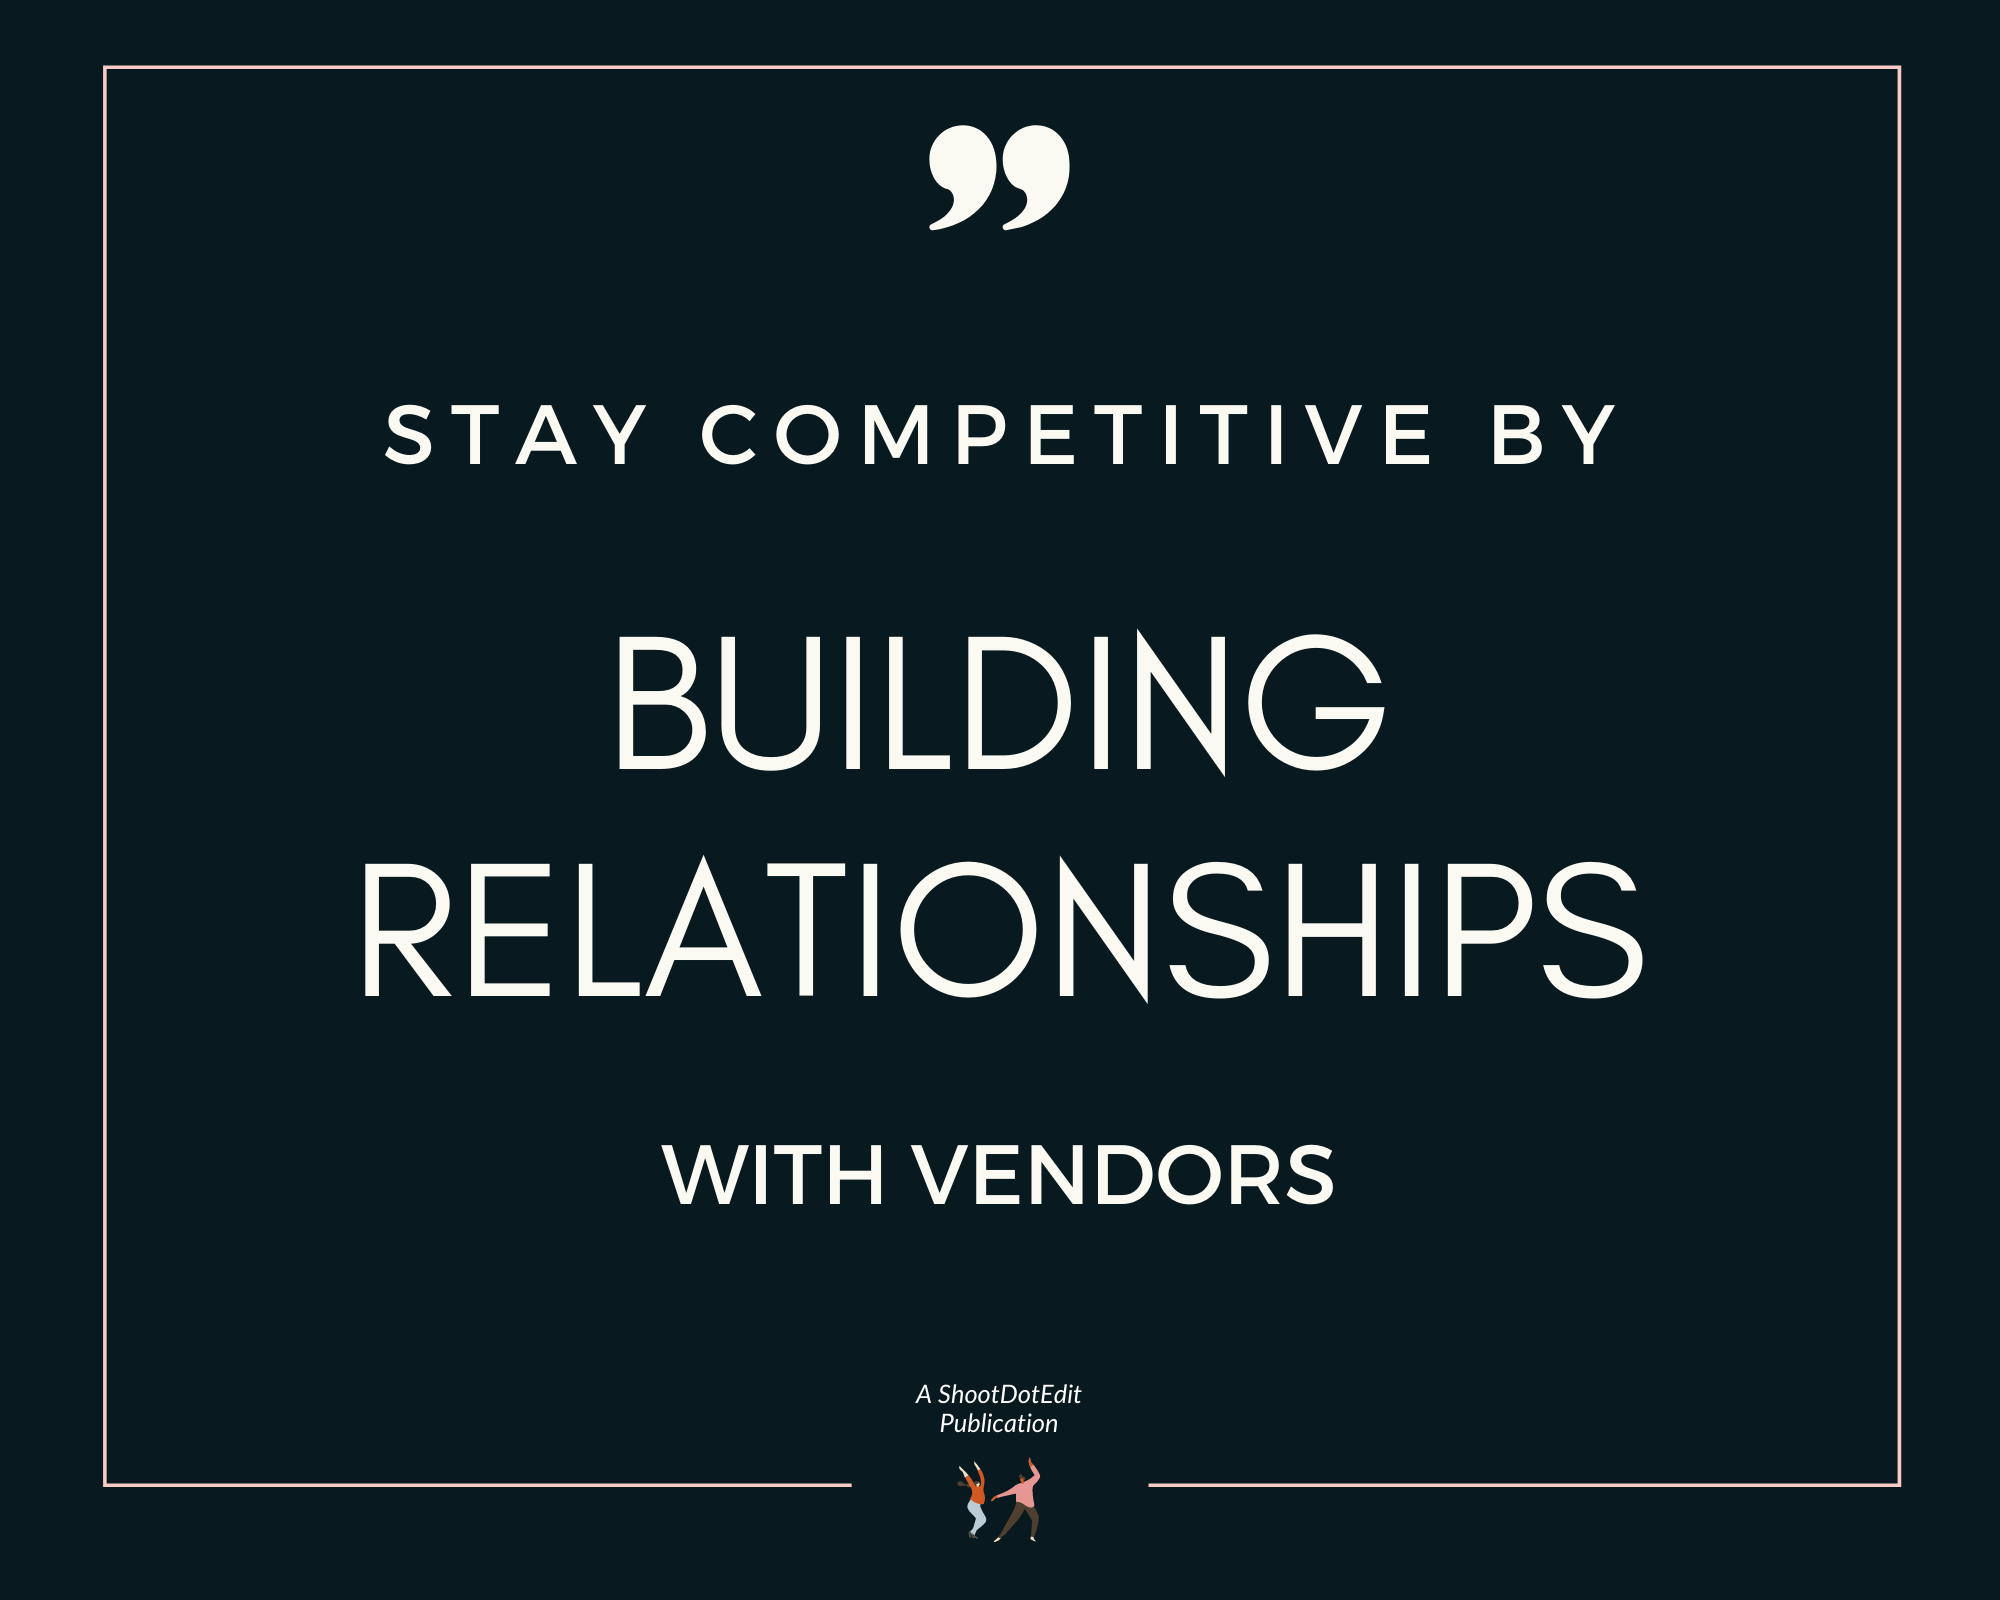 Infographic stating Stay Competitive by Building Relationships With Vendors